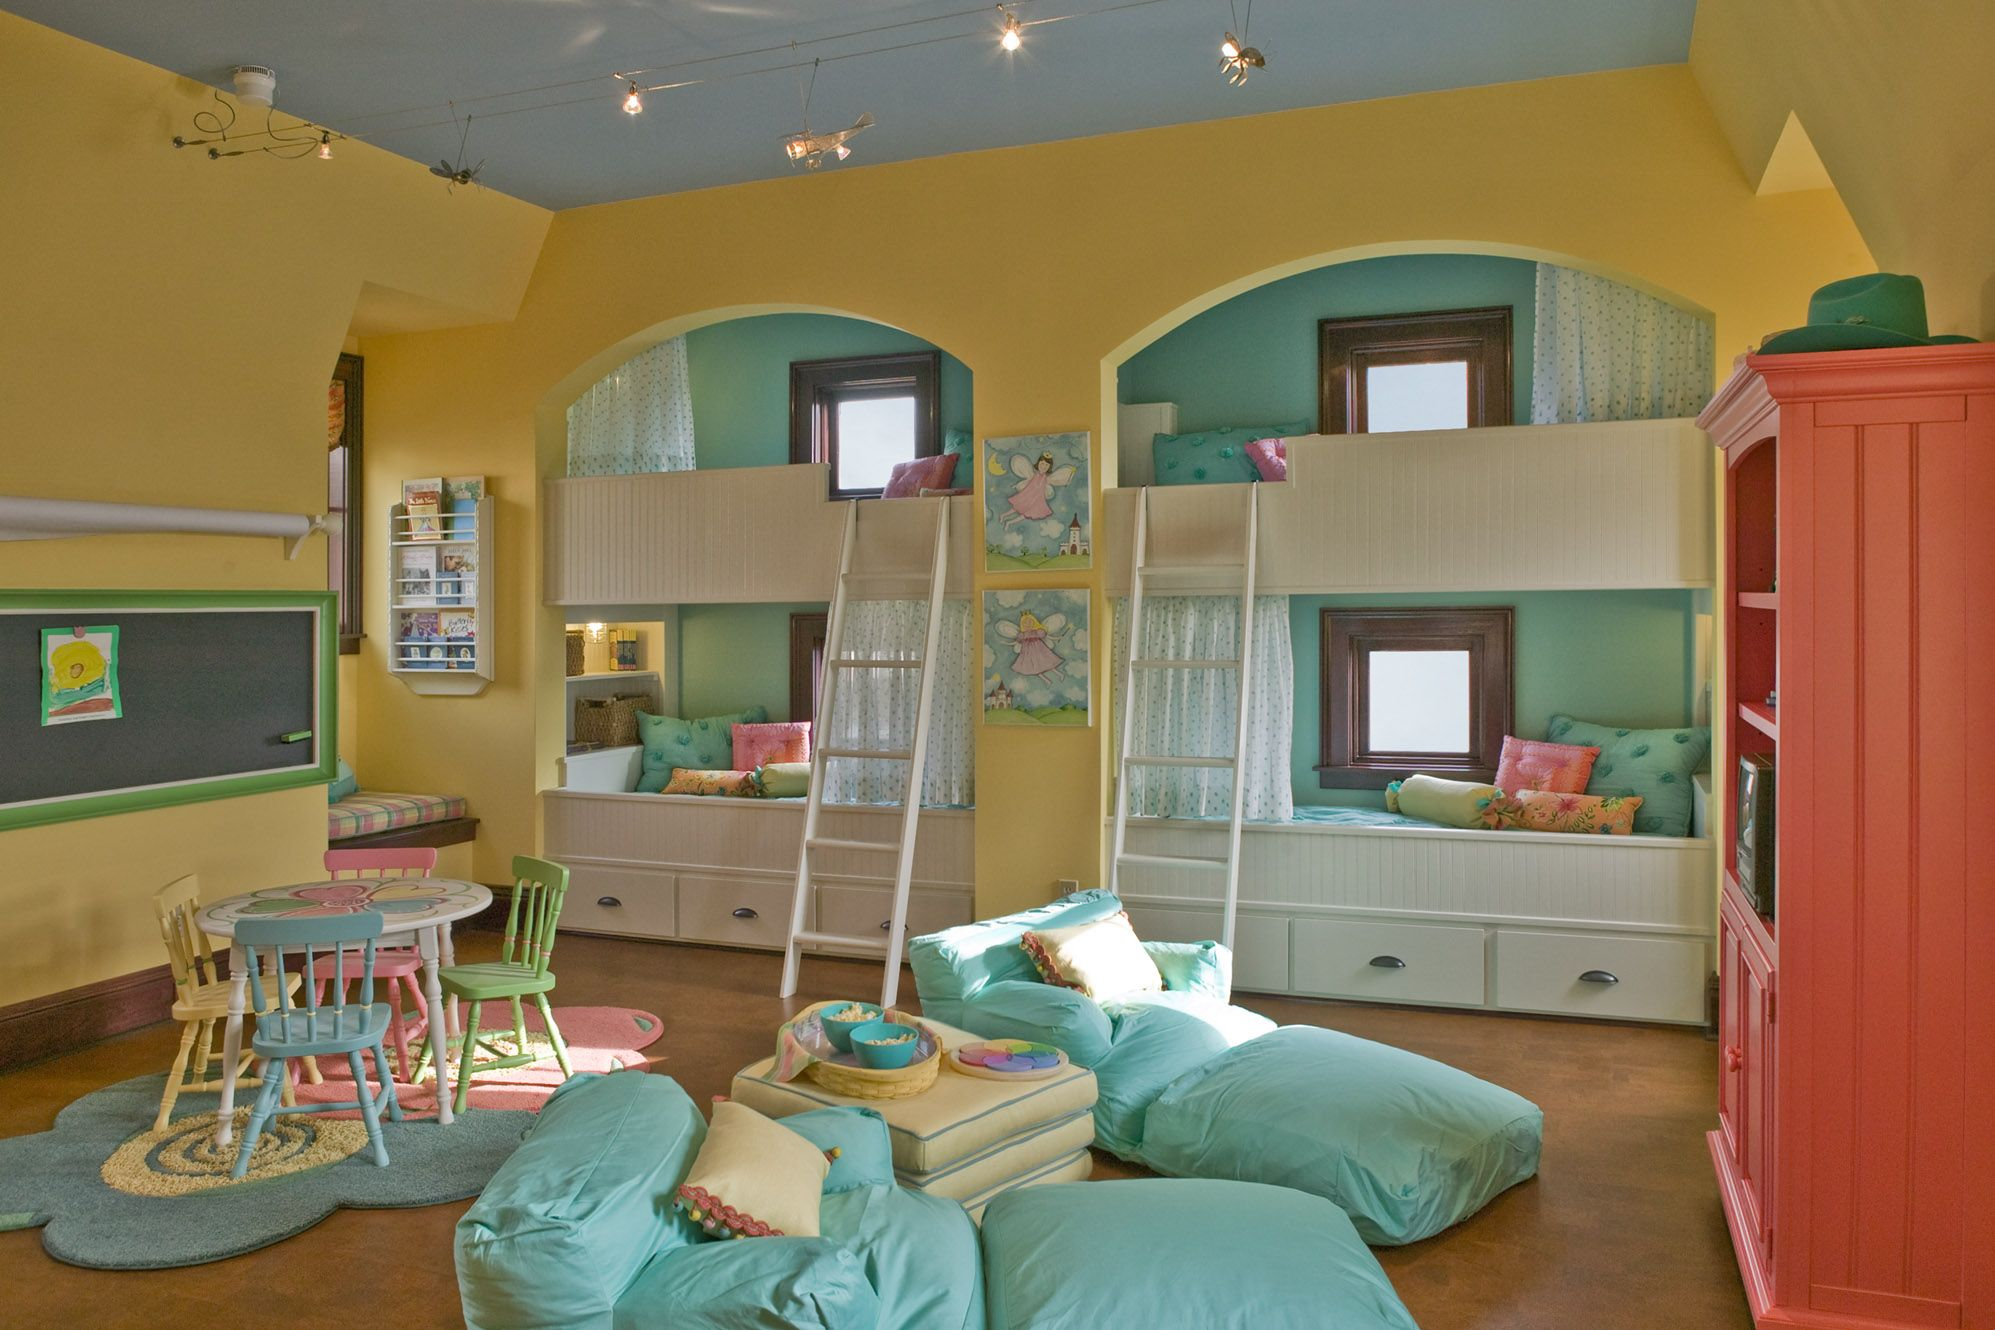 bedrooms that look like playrooms | Room, Playrooms and Bedrooms